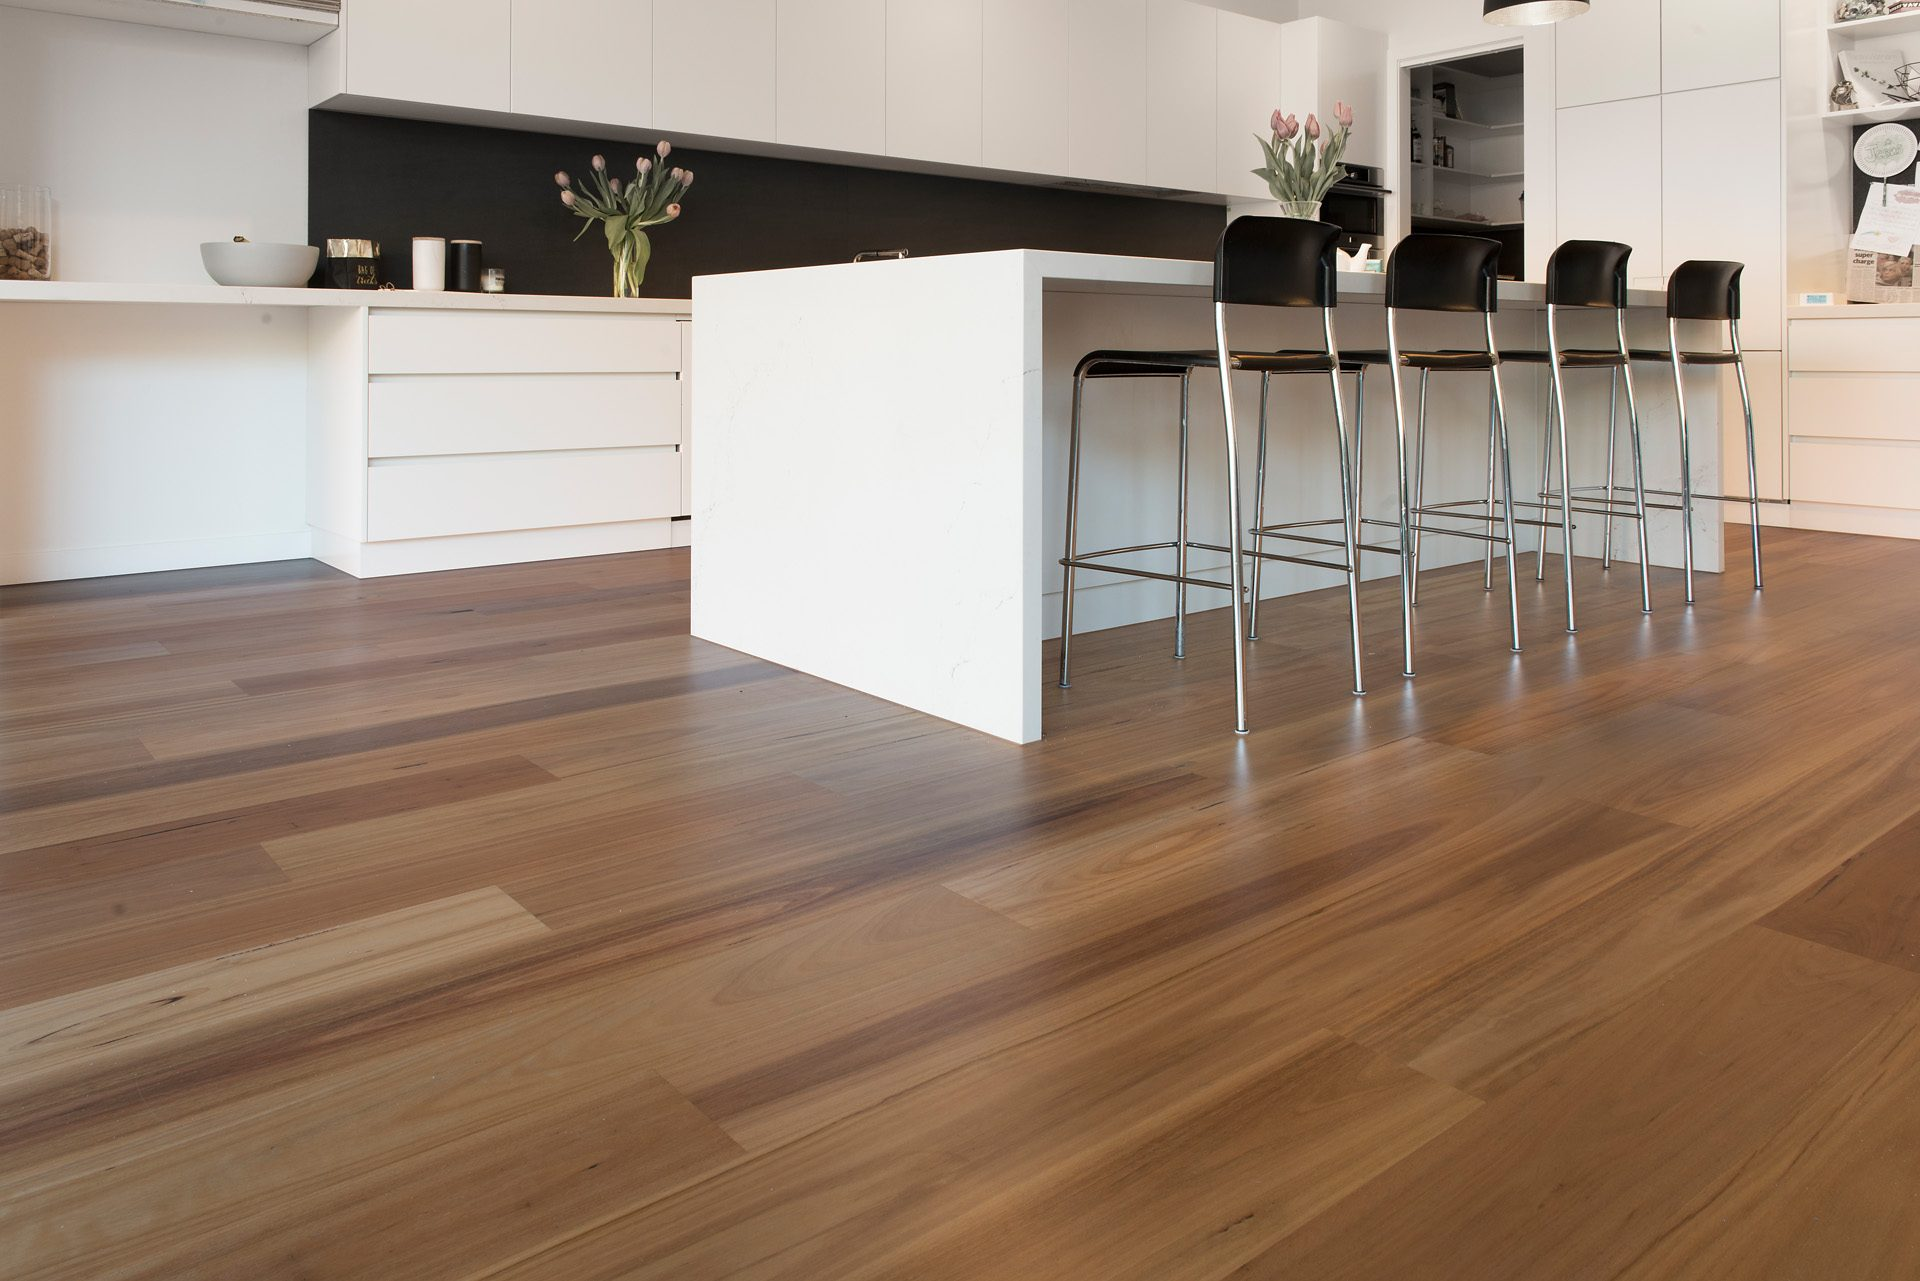 Timber Flooring Chatswood Is Perfect For Your Home Office Setting Or Other Commercial Spaces